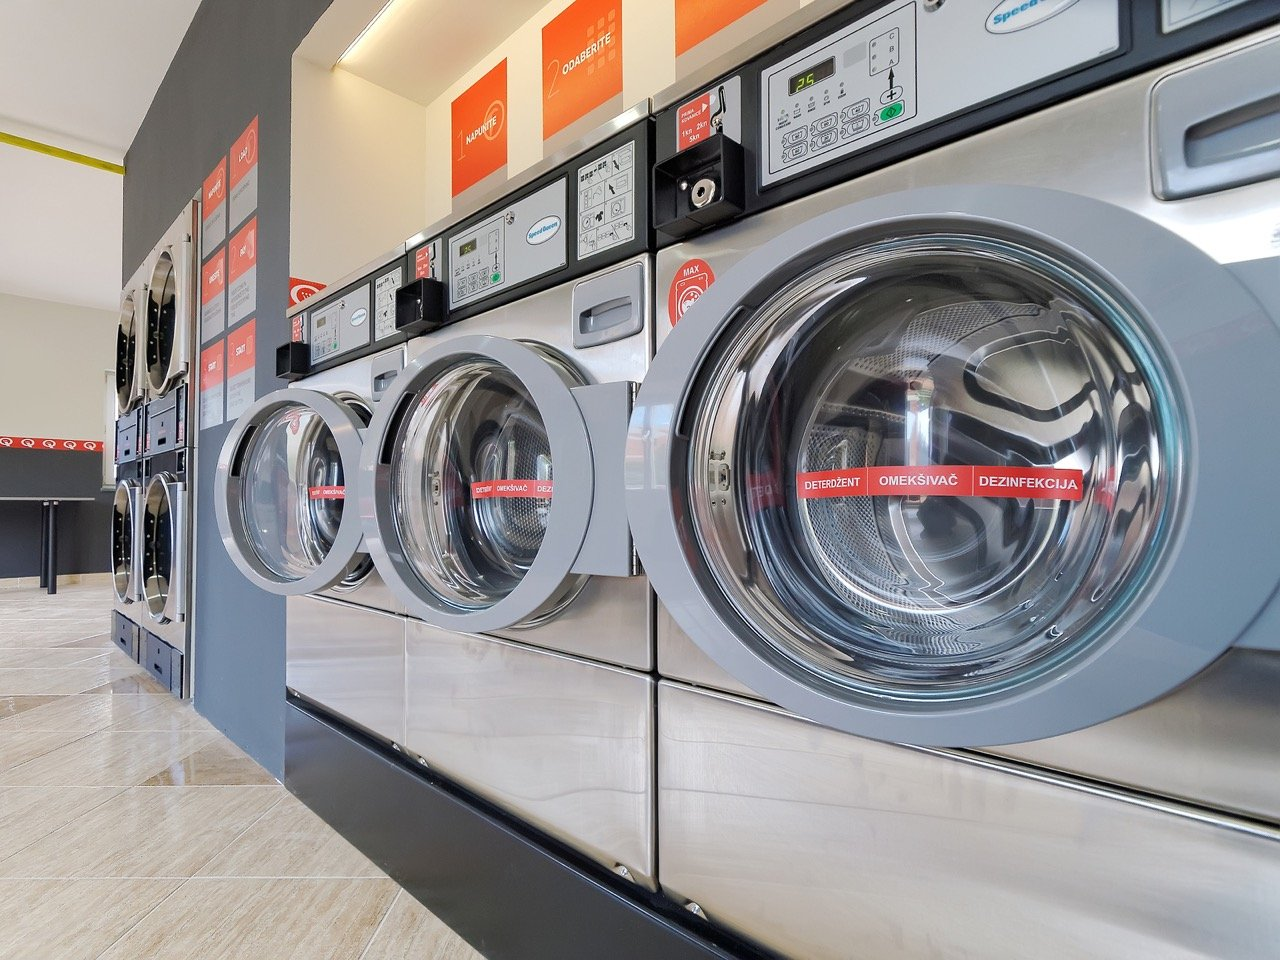 PULA, CROATIA - MAY 4, 2016: Speedy Queen coin operated laundromat washing and drying machine in Pula Croatia.